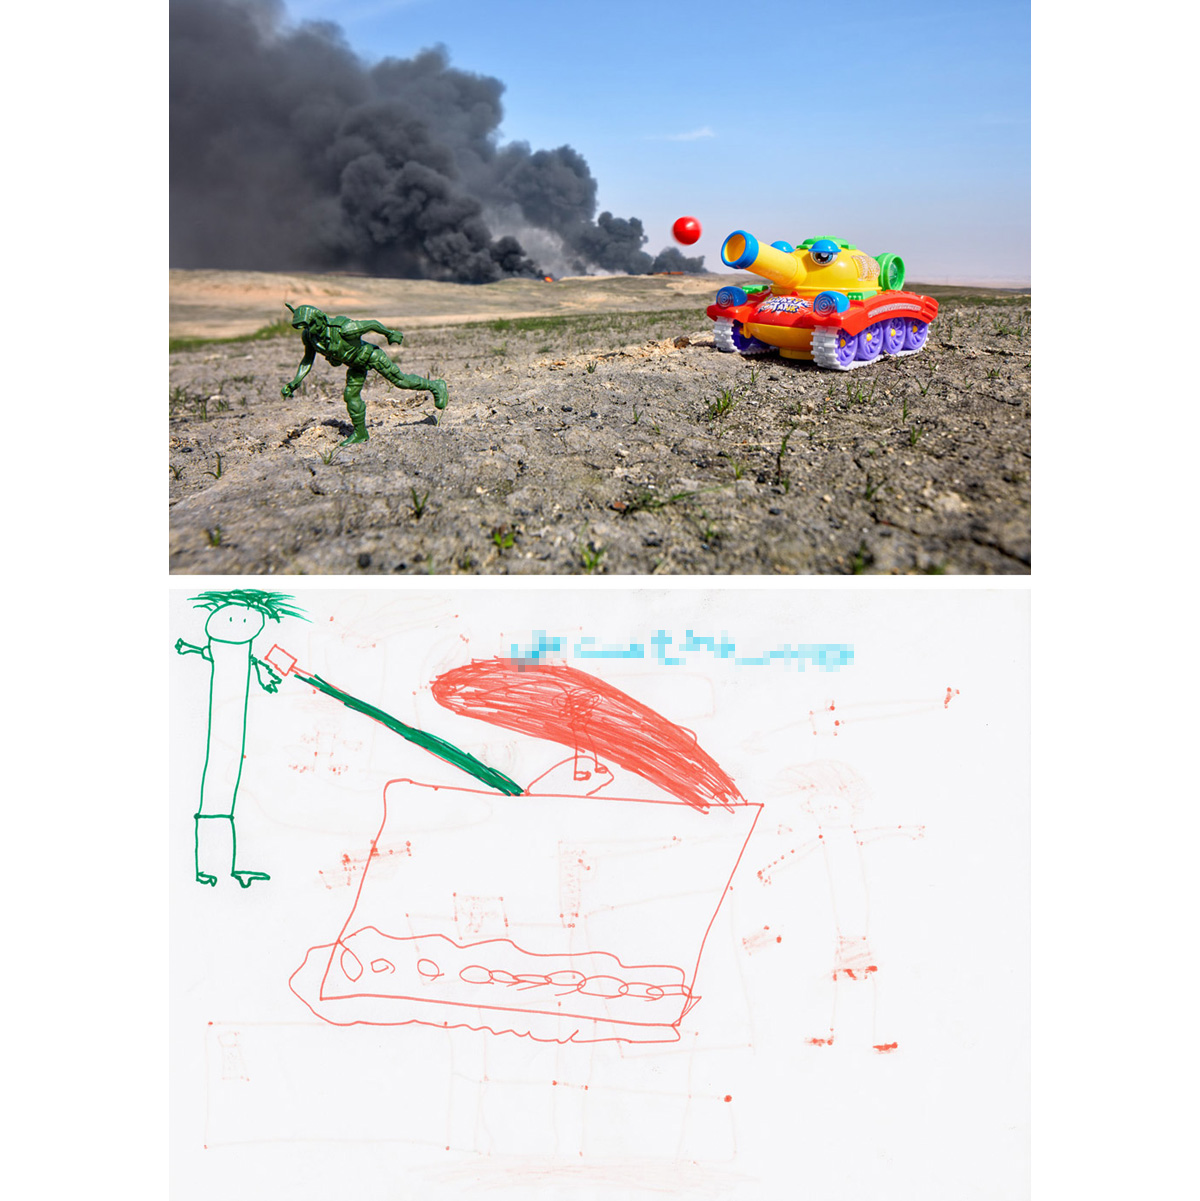 "Crazy Tank - Qayyarah, Iraq2017In a recently reopened school in Qayyarah, Iraq, ""Mas'ud"" created a very direct drawing showing what he said was a tank killing Daesh (ISIS). The town had been under ISIS control for two years and only just liberated. A plastic solider and electronic tank purchased nearby were photographed in the burning oil fields on the outskirts of town, next to tank tracks left during the fight over the territory. The area around the burning wells was heavily littered with mines, greatly complicating efforts to extinguish the blazes. The smoke that loomed over the city helped feed the lingering fears of Mas'ud and the other children in town."